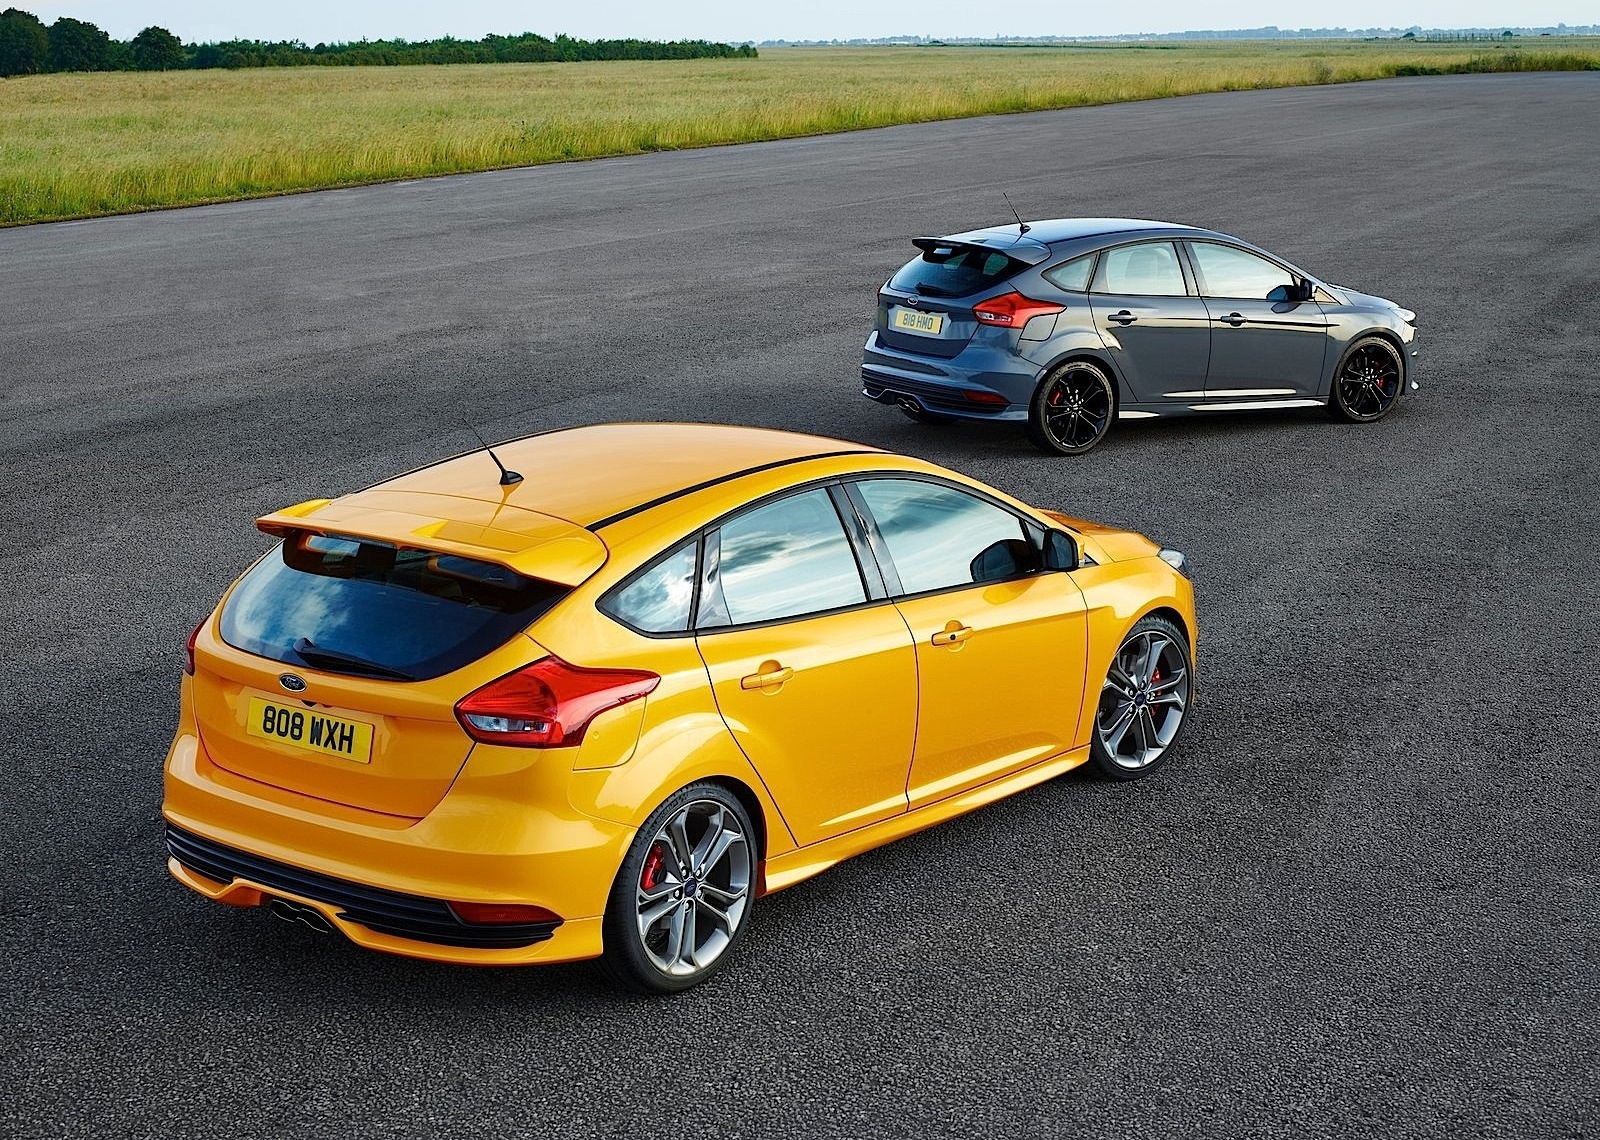 ford focus st 5 doors specs photos 2014 2015 2016 2017 2018 autoevolution. Black Bedroom Furniture Sets. Home Design Ideas